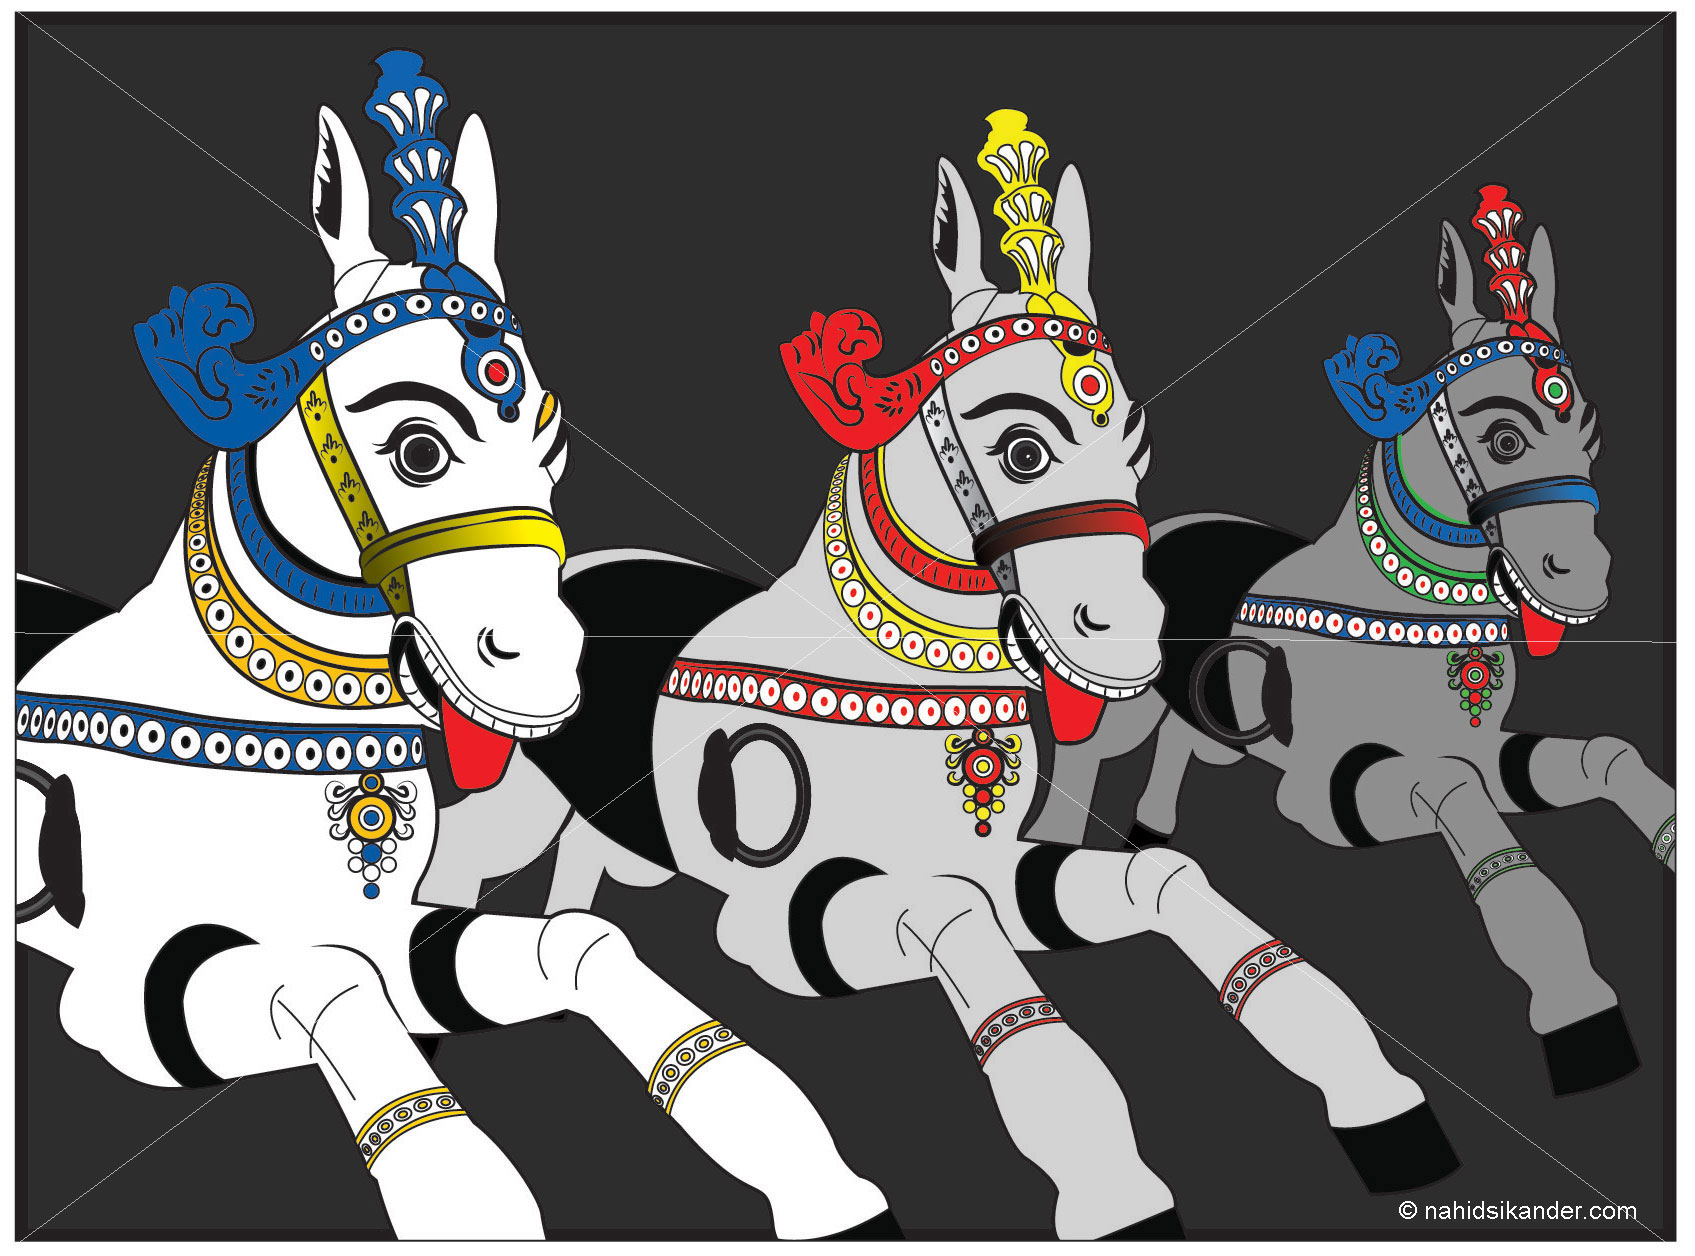 Horses sculptures Indian art style,converted into vector images